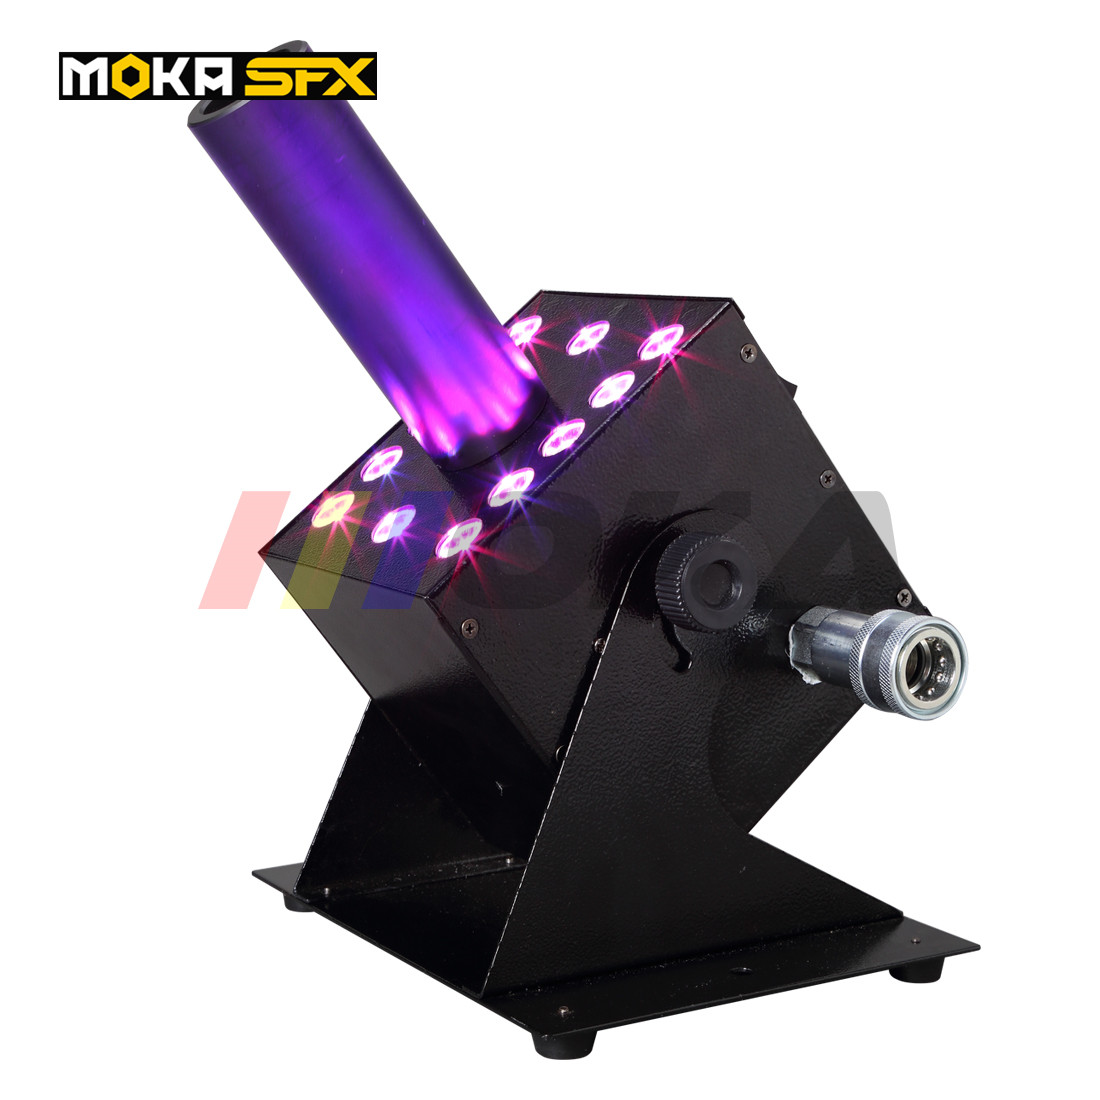 Led CO2 Jet Machine Co2 Cryo Jet Canon Stage Effect Co2 Fog Machine With Free 6M Co2 Gas Hose For Stage DJ Lighting